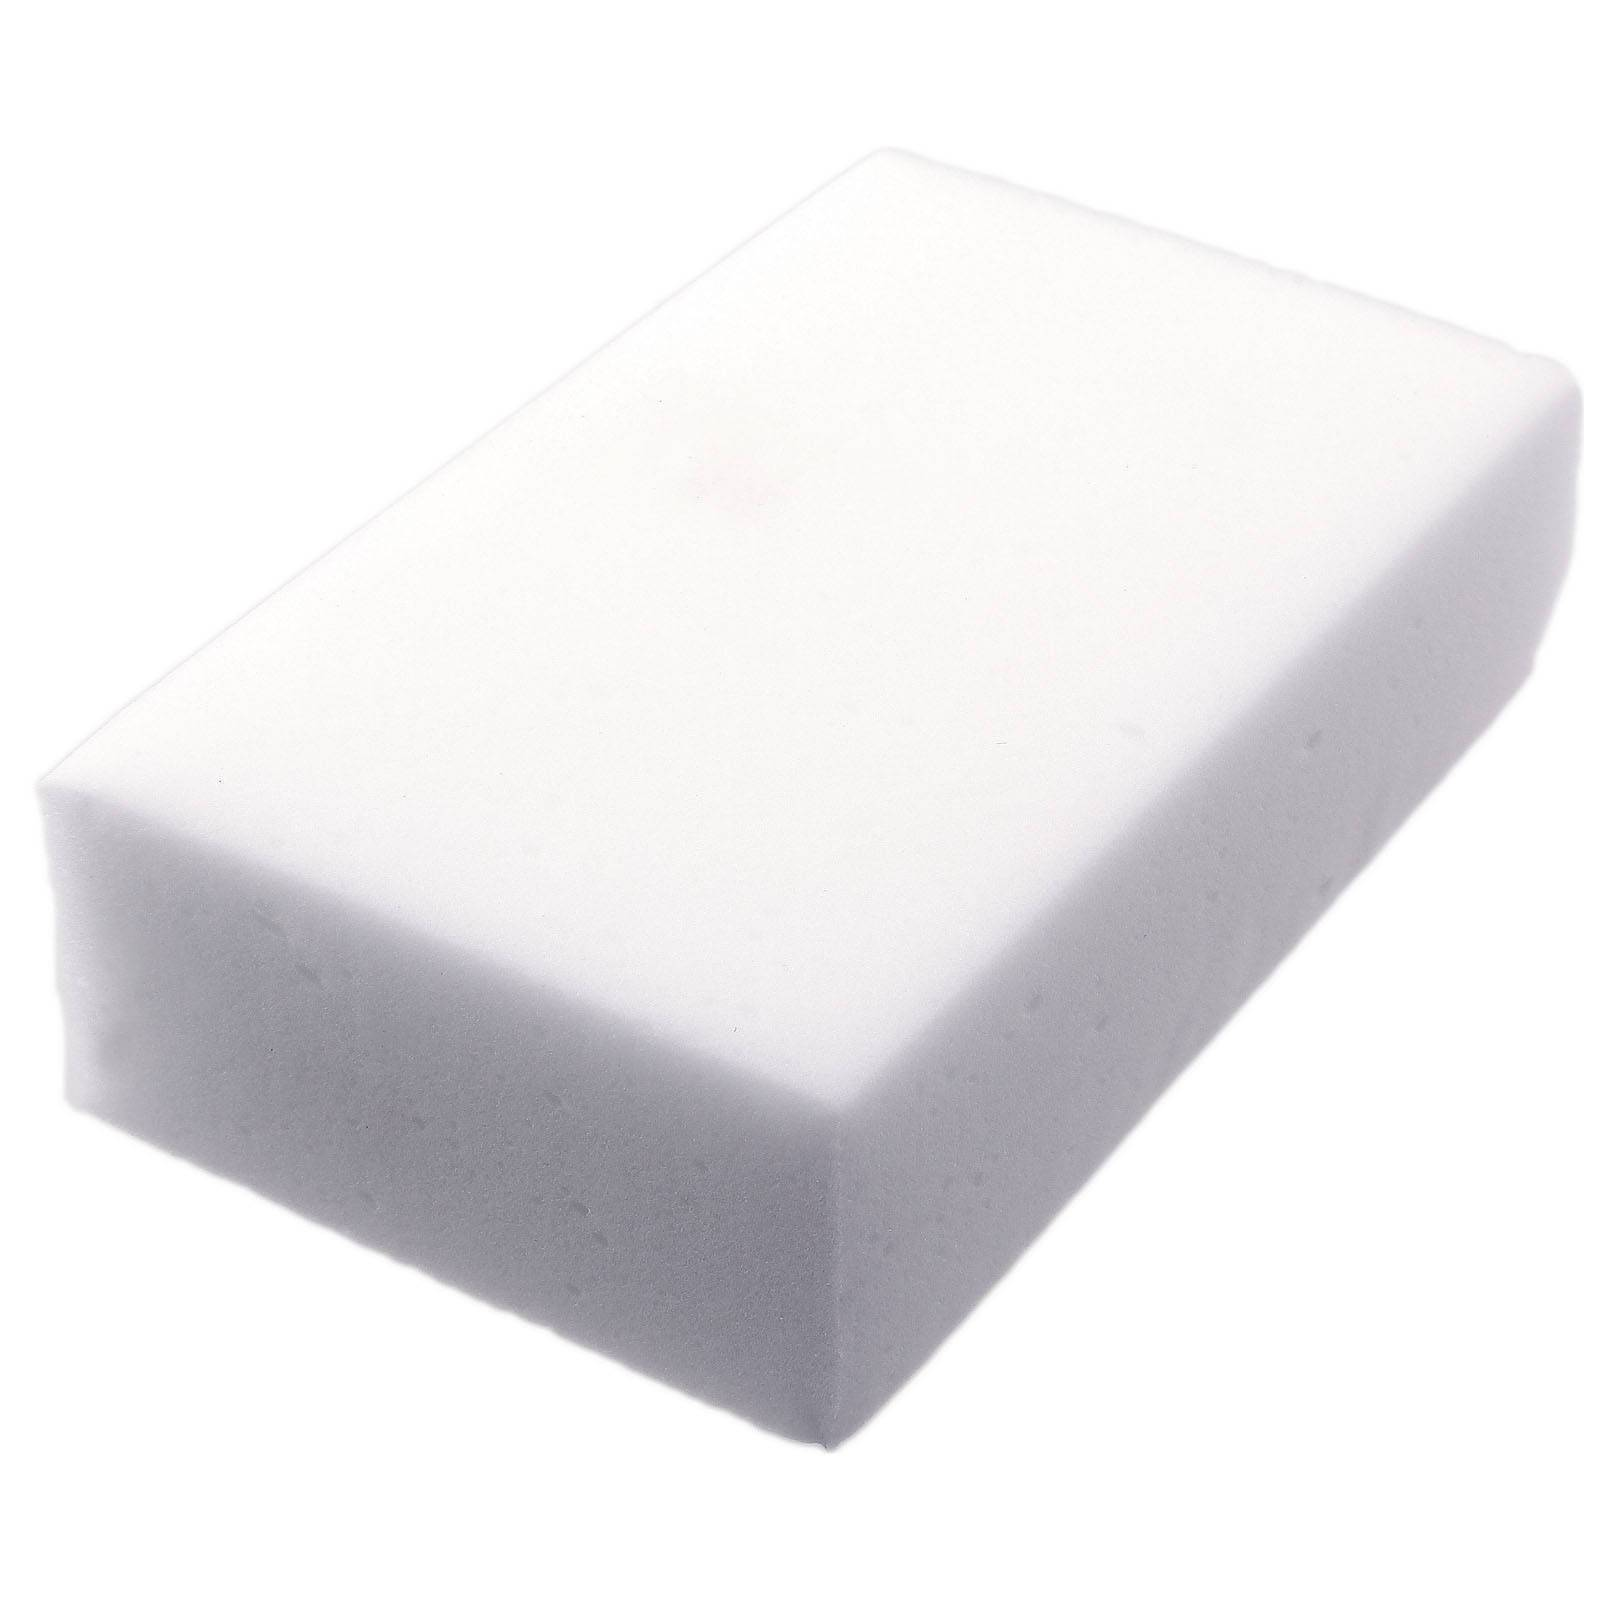 Magic Cleaner Sponge - 2x